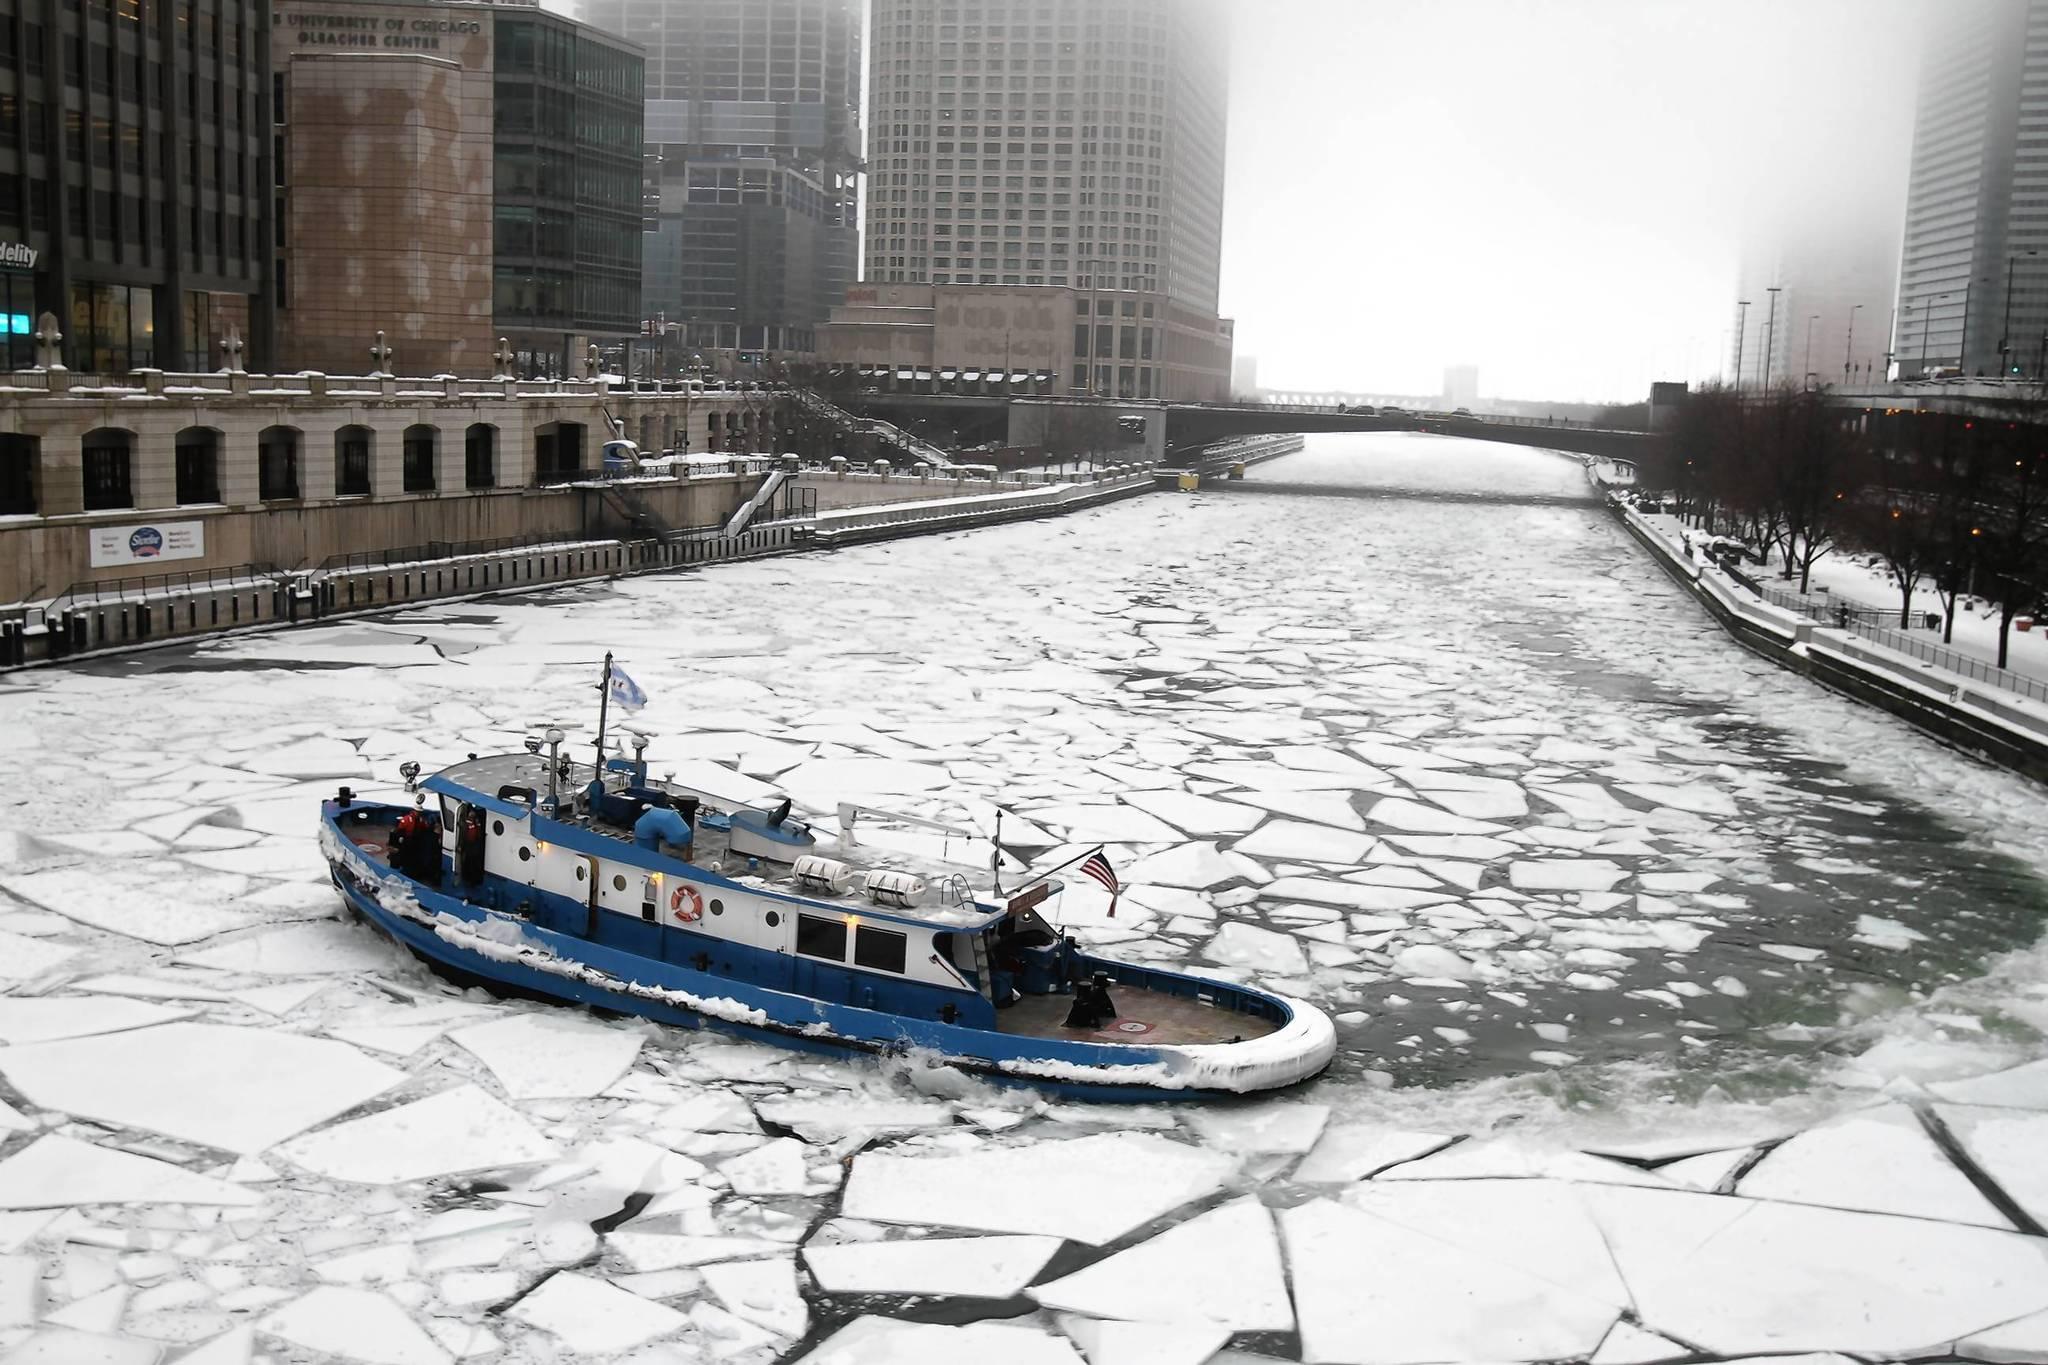 The James J. Versluis ice-breaking tug breaks up ice on the Chicago River near the North Michigan Avenue bridge.